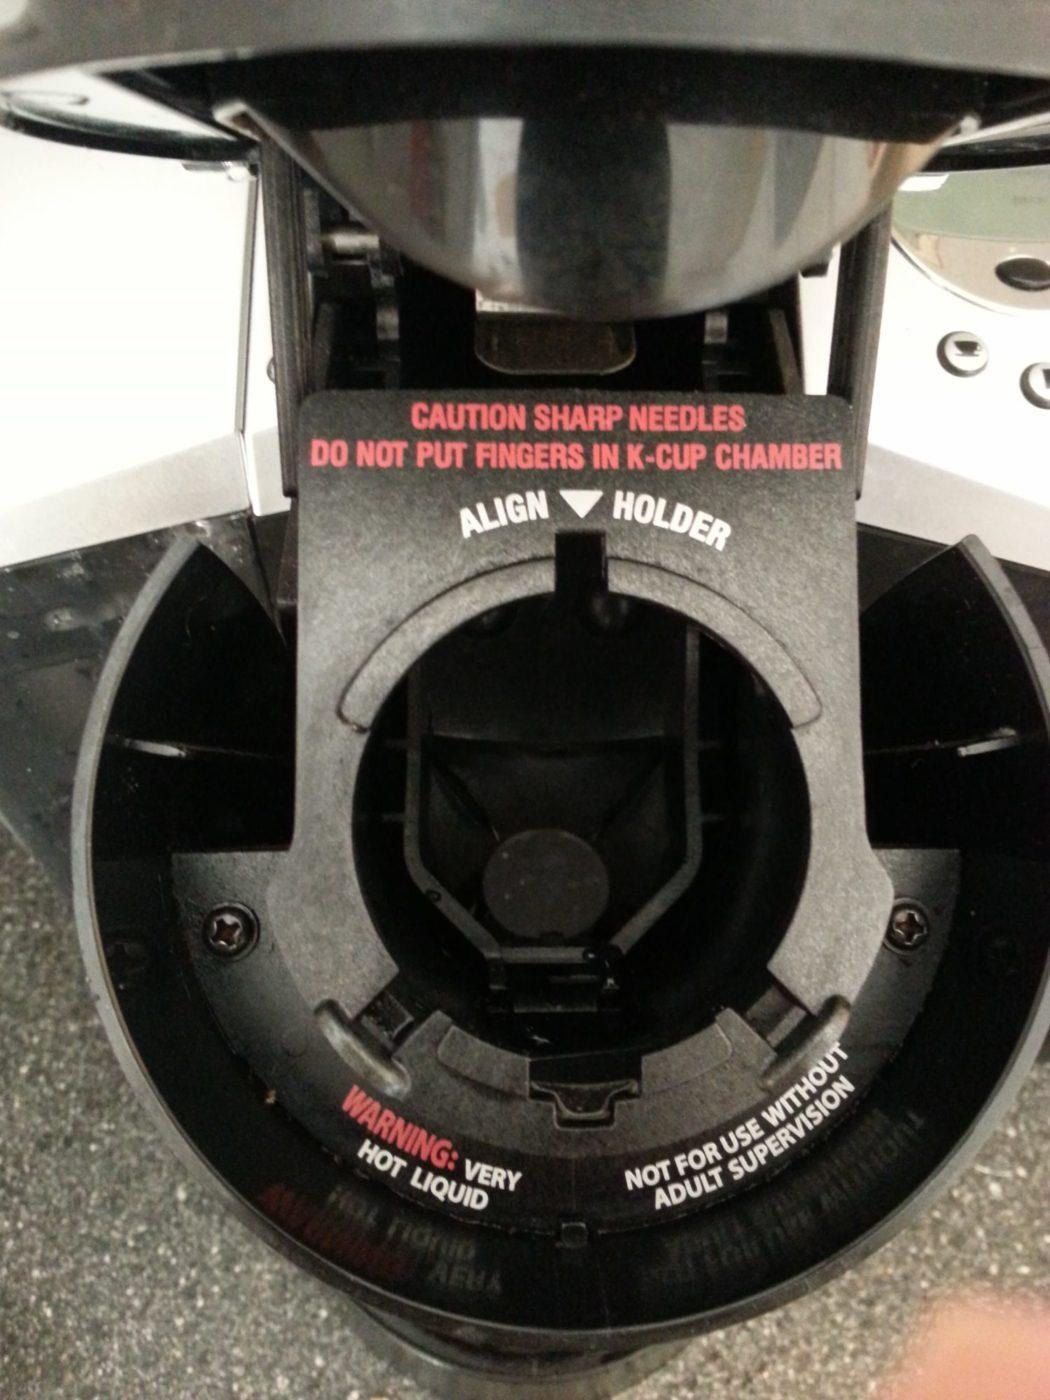 How to clean a Keurig K-cup coffee maker